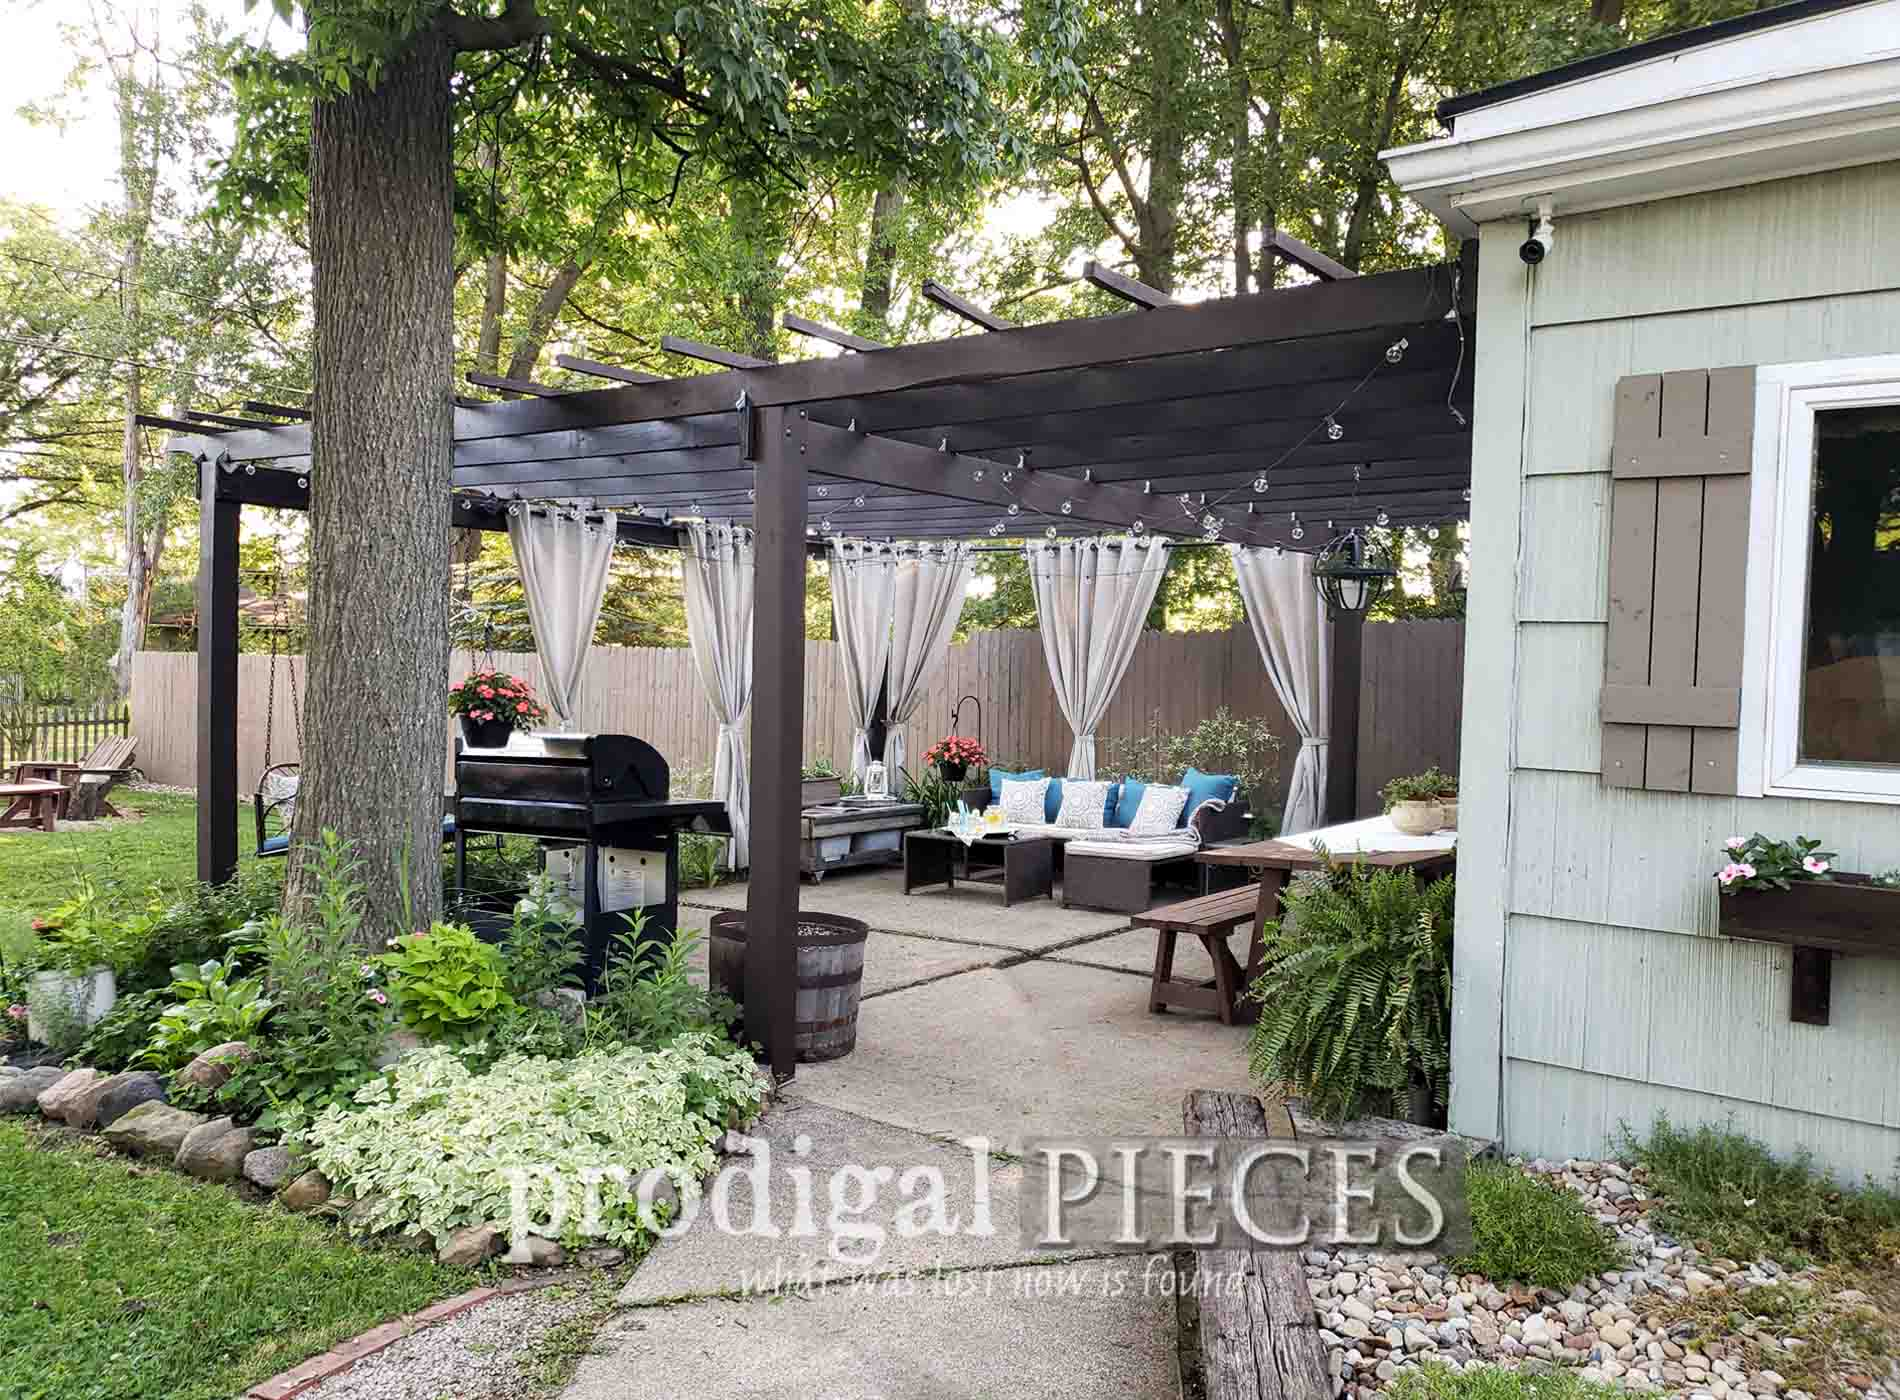 Featured DIY Patio Update by Prodigal Pieces | prodigalpieces.com #prodigalpieces #diy #patio #farmhouse #home #homedecor